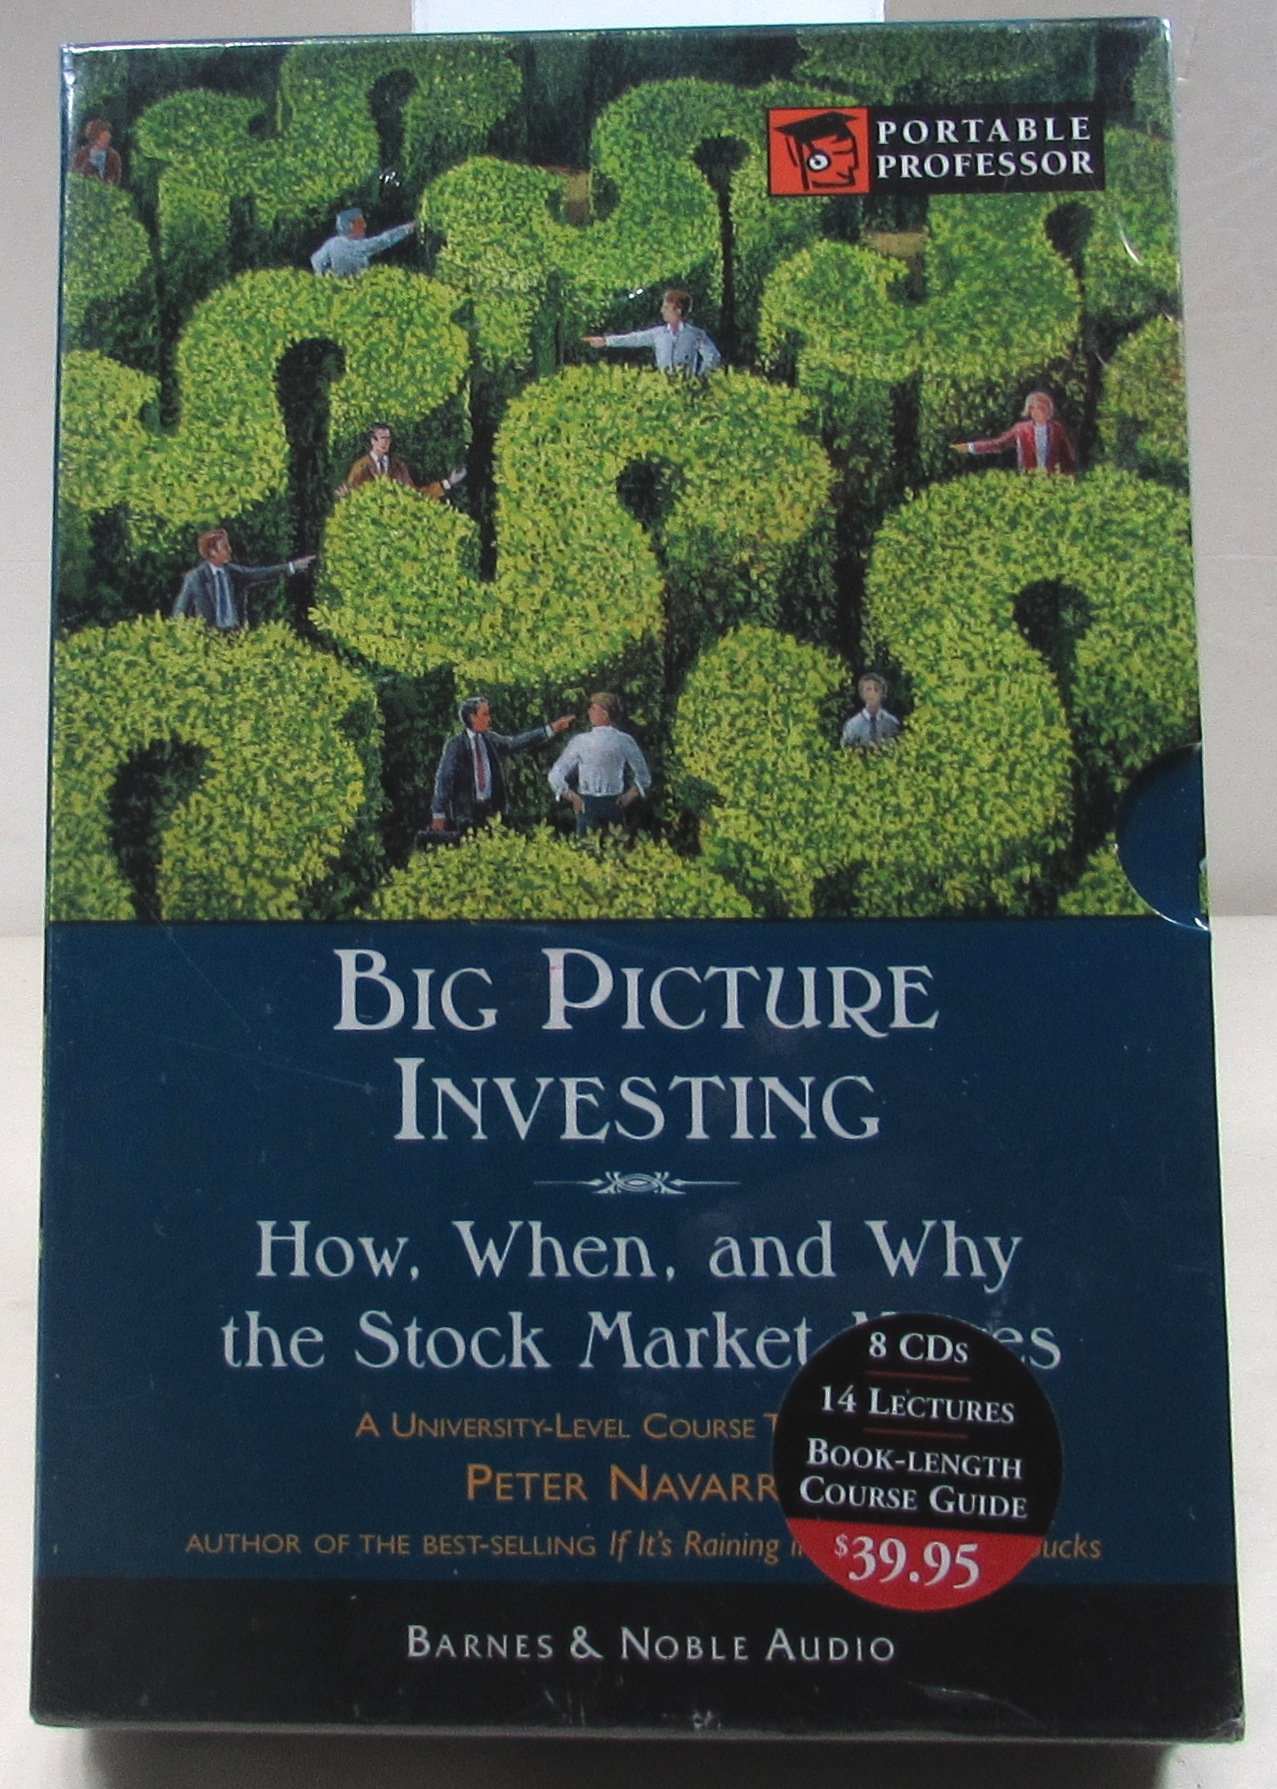 Big Picture Investing: How, When, and Why the Stock Market Moves